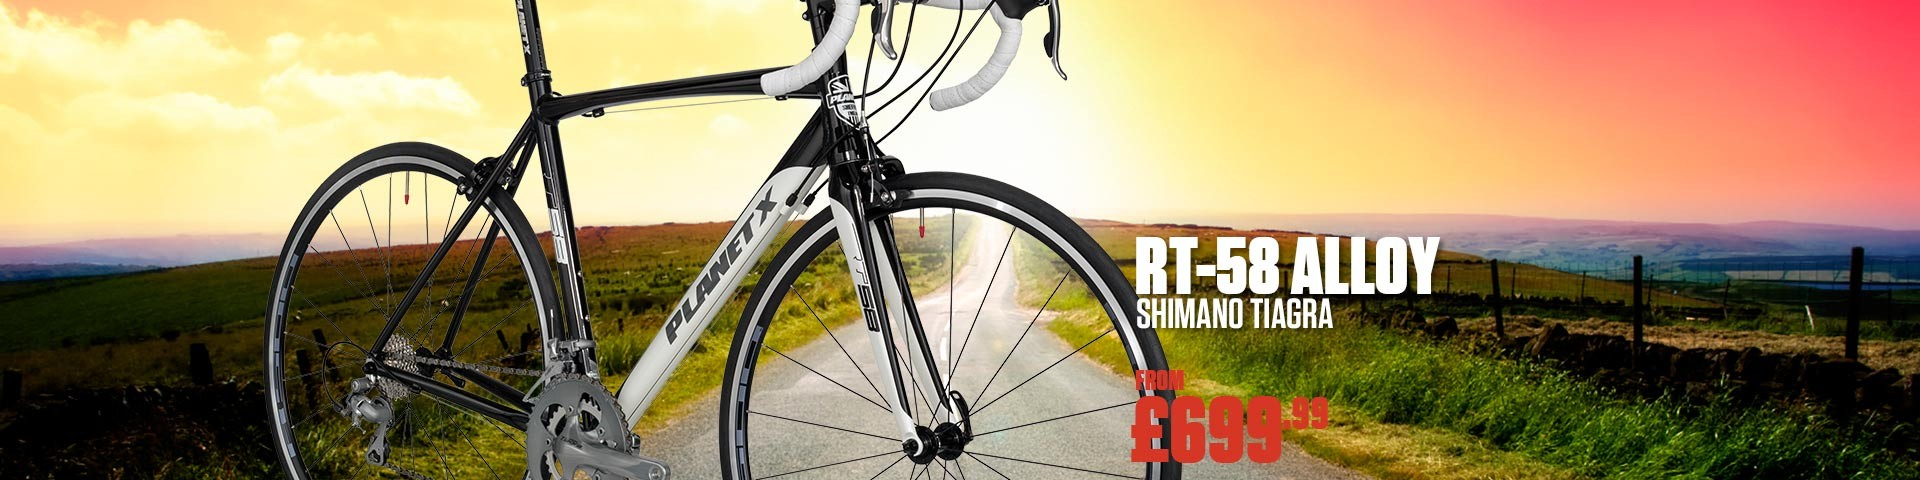 RT-58 Alloy with Shimano Tiagra